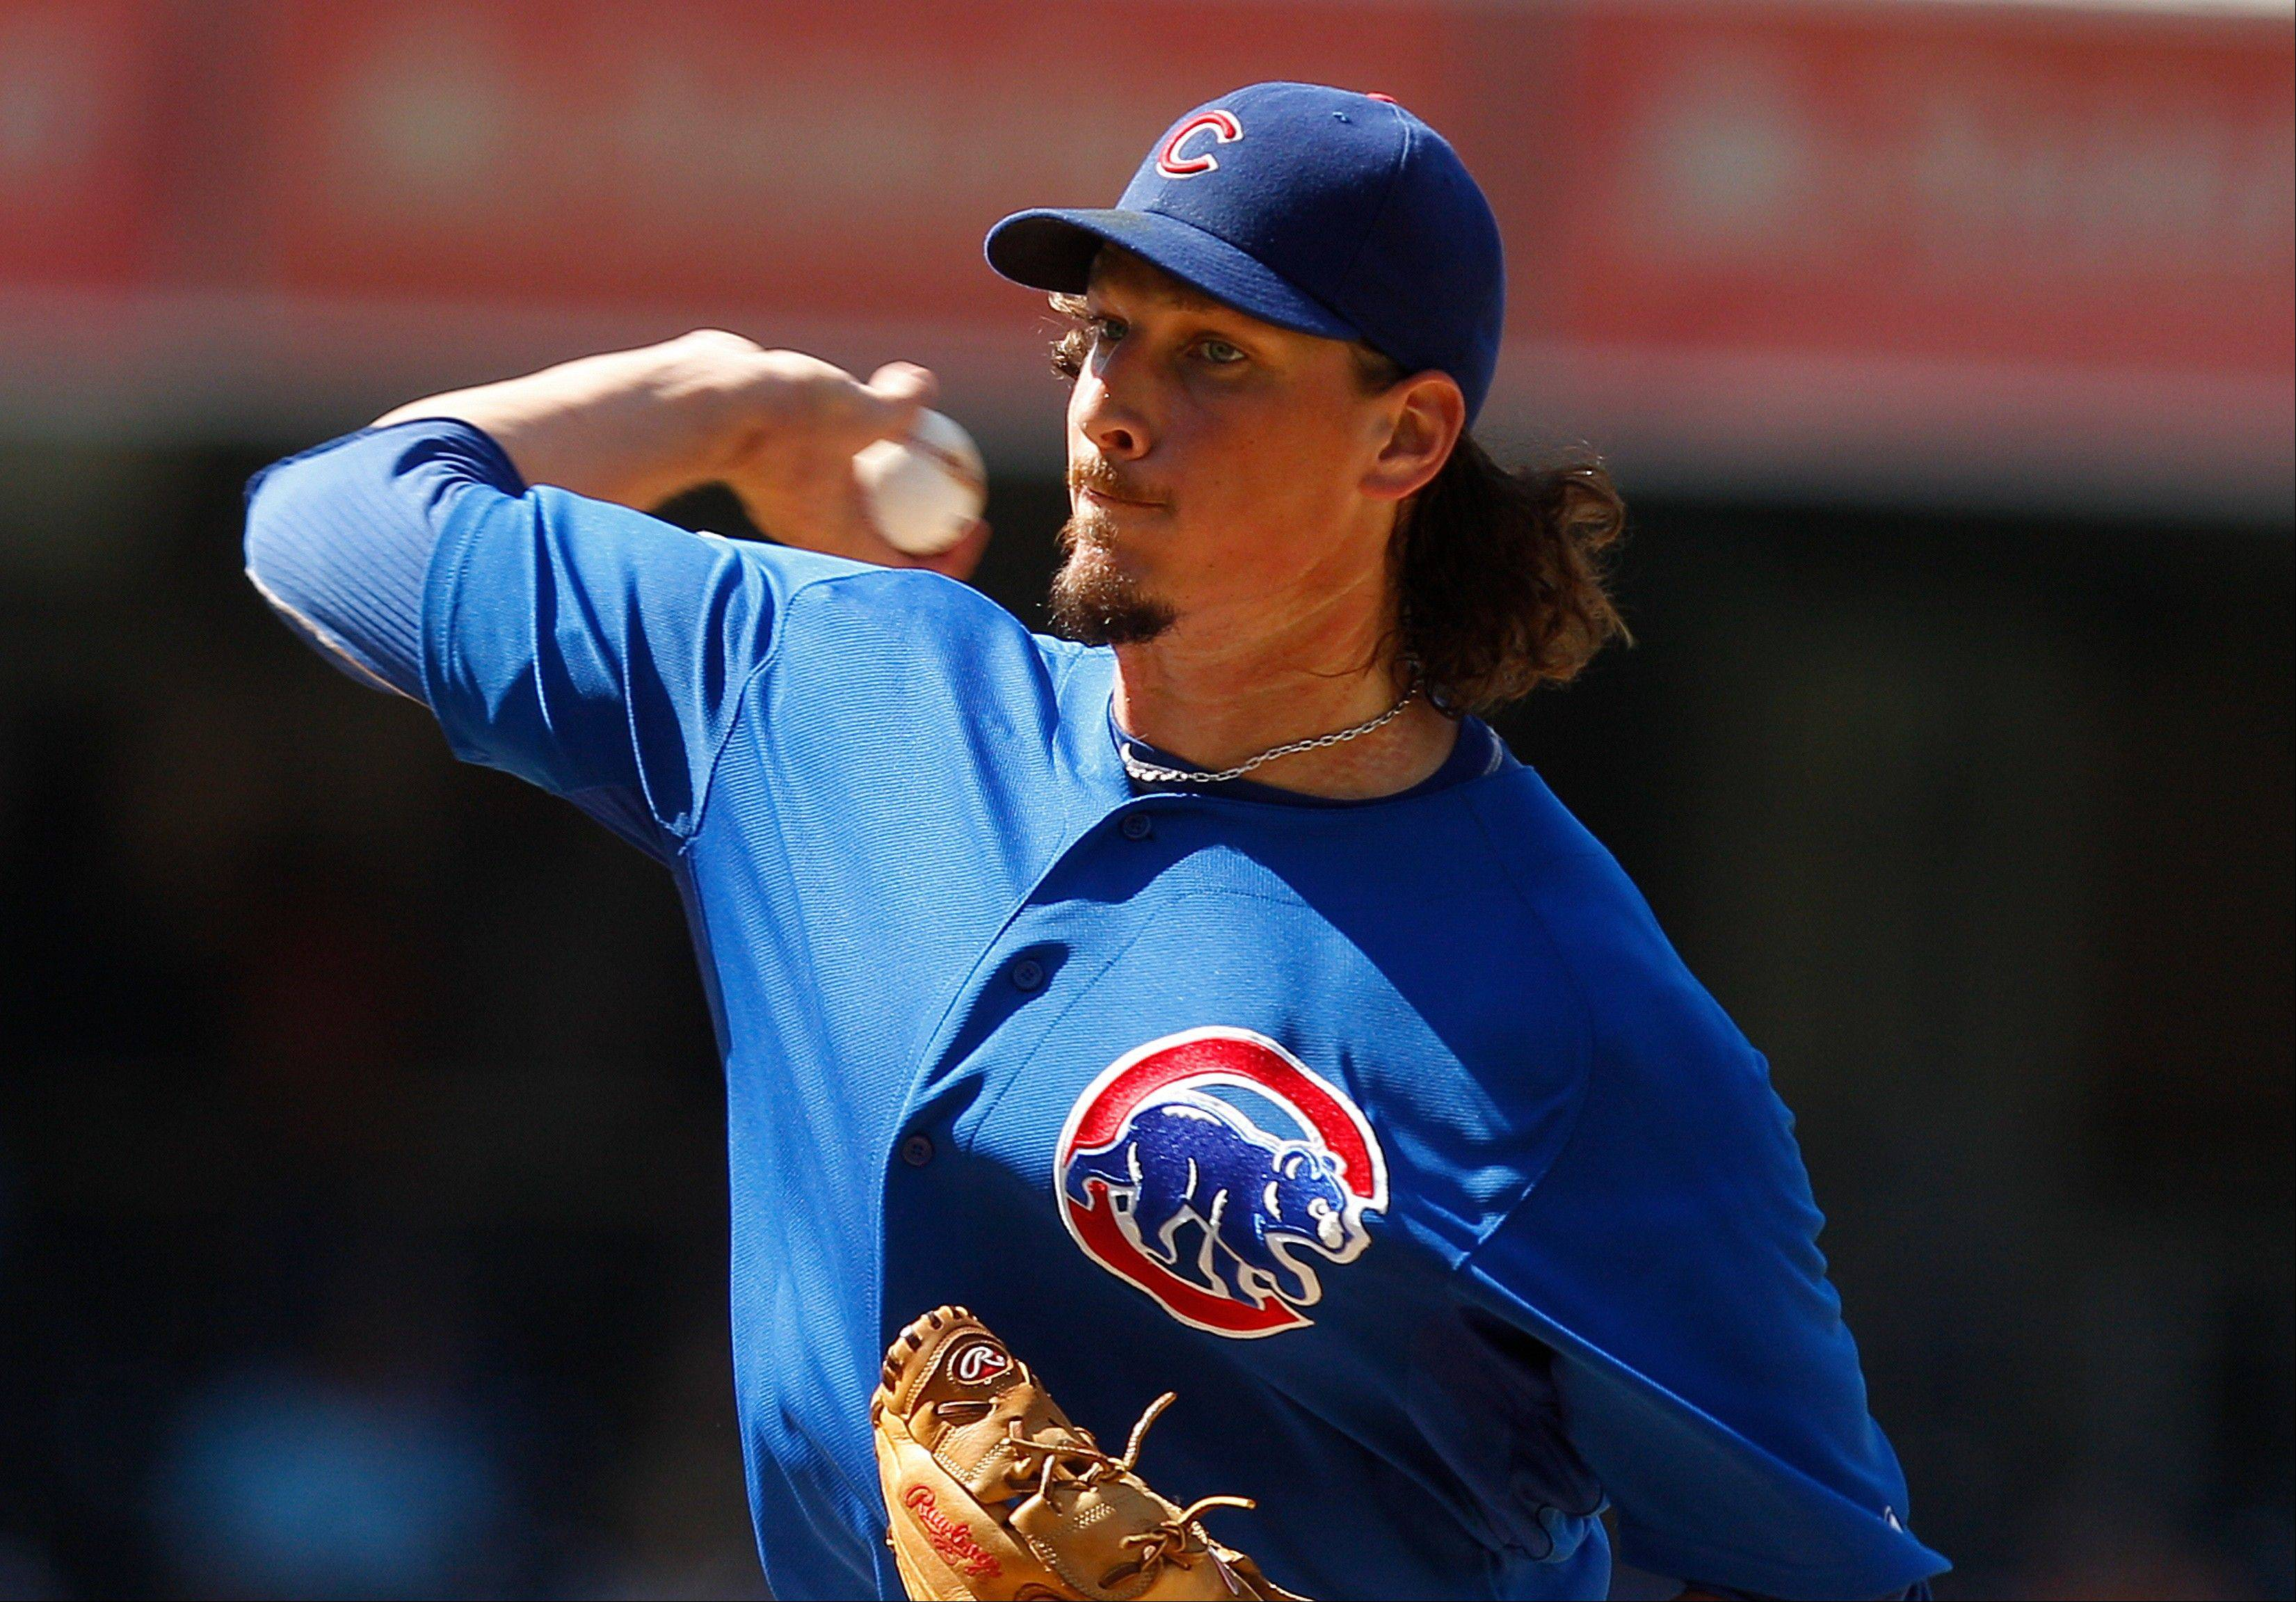 Cubs starting pitcher Jeff Samardzija throws against the San Diego Padres Wednesday during the first inning in San Diego.